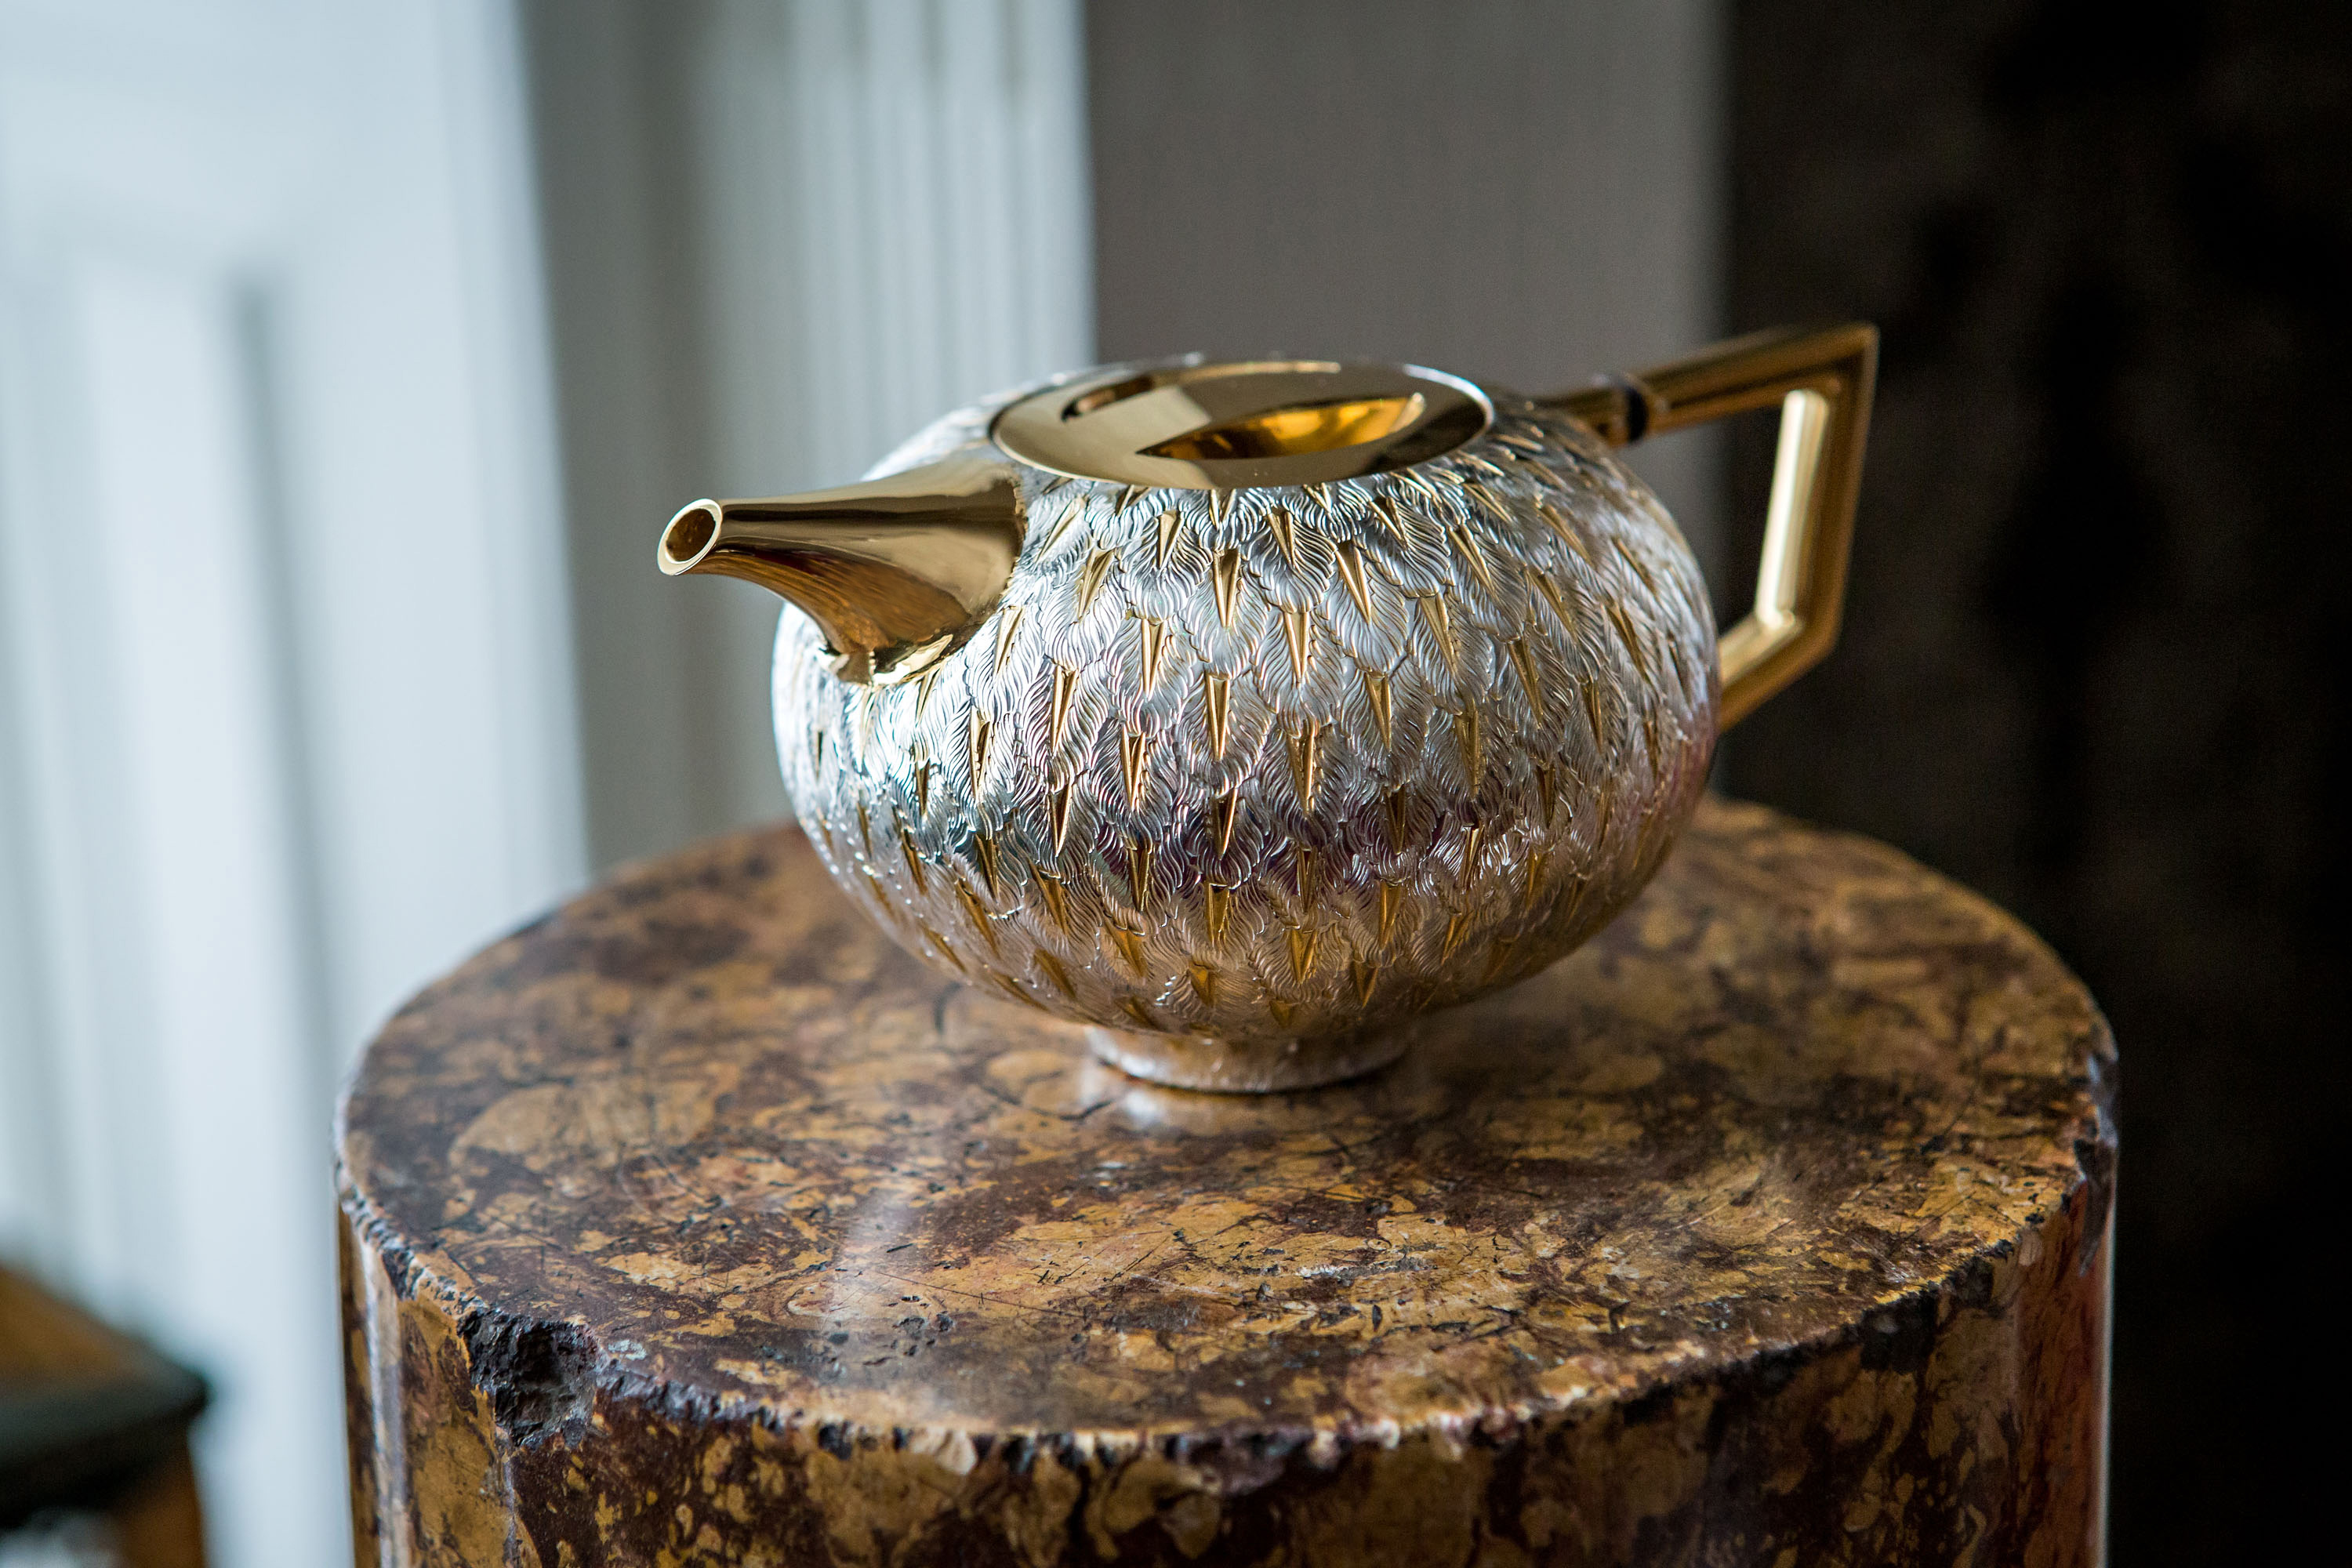 Tane Silver Voliere Teapot at Mallet Design Exhibition